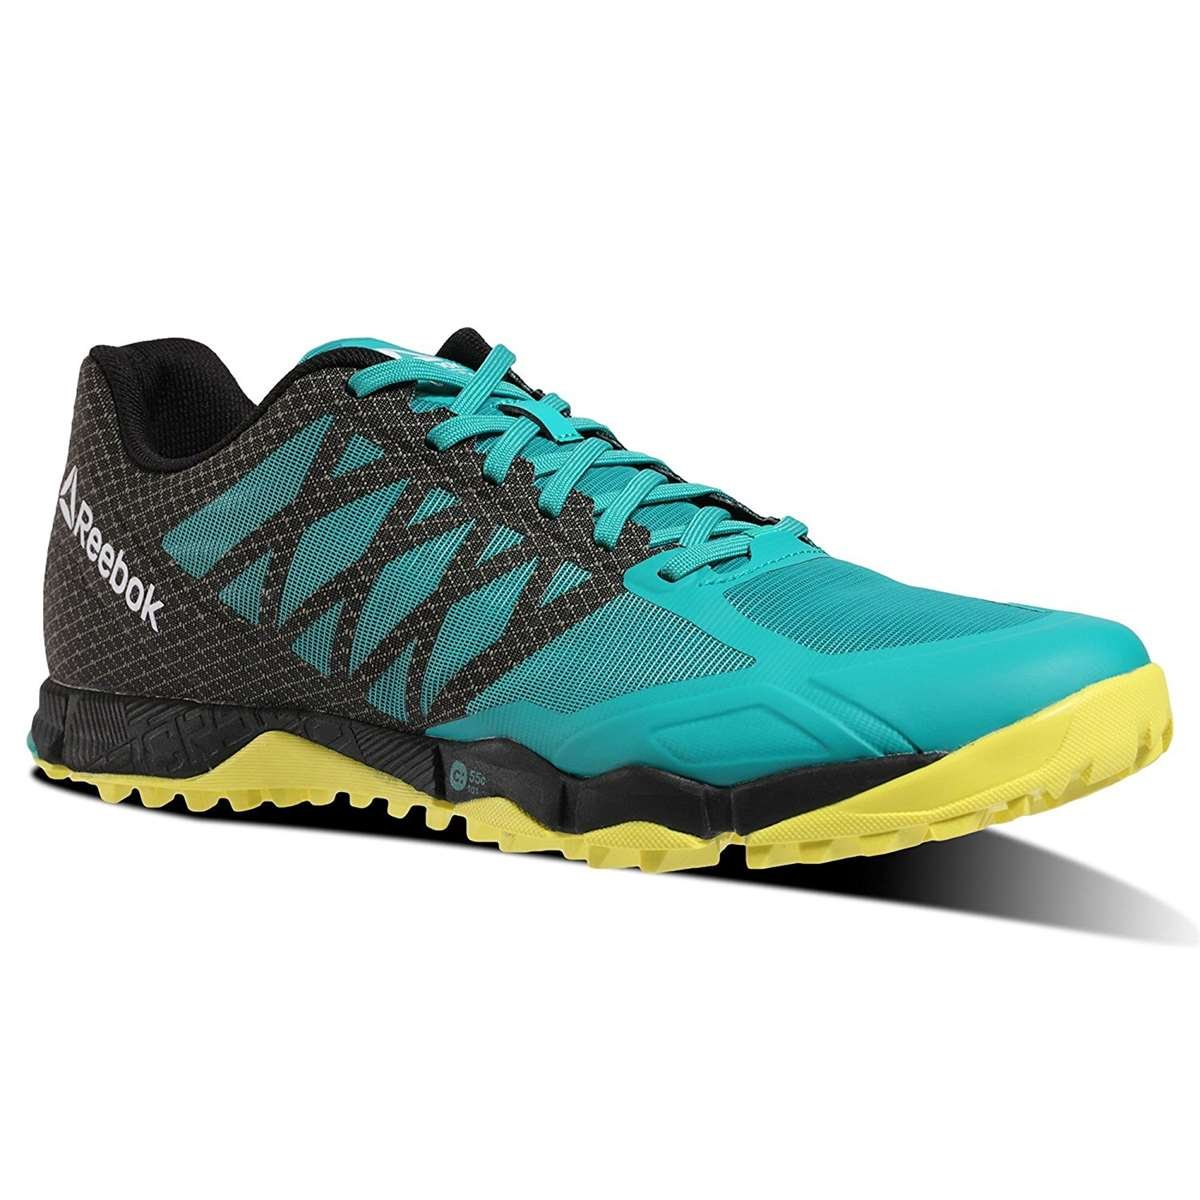 Reebok Men's R Crossfit Speed Field Training Shoes